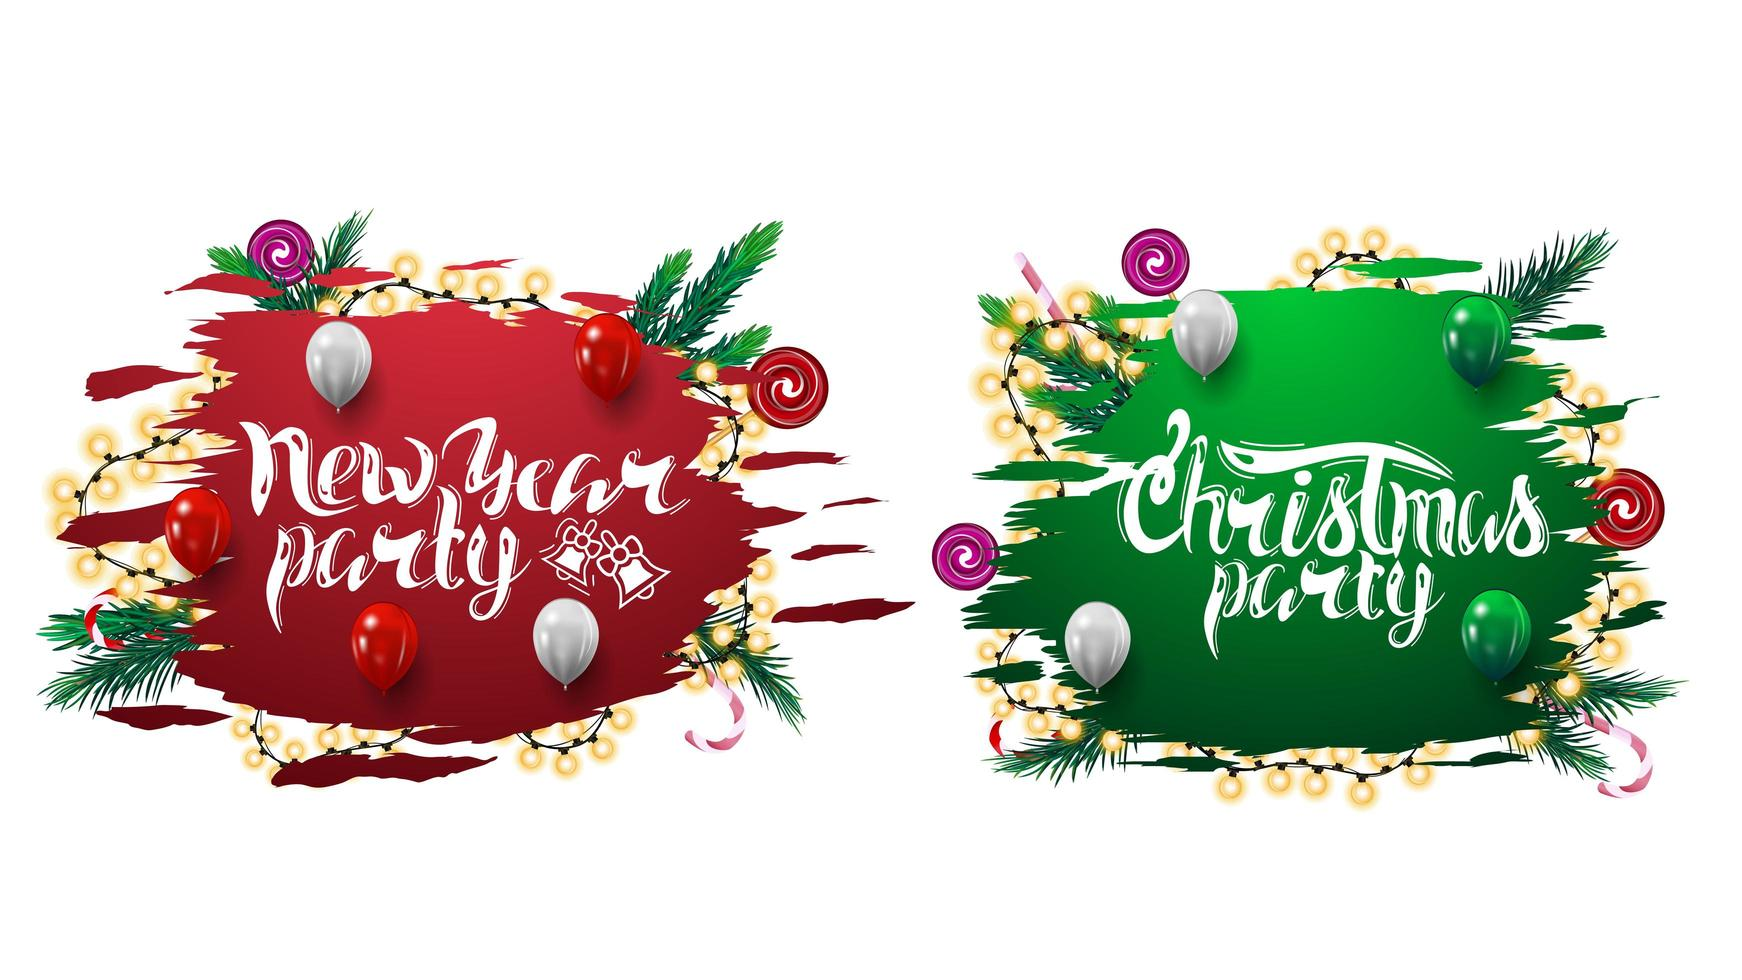 Collection of Christmas party invitation web banners with abstract ragged shapes decorated with Christmas tree branches, candies and garlands isolated on white vector